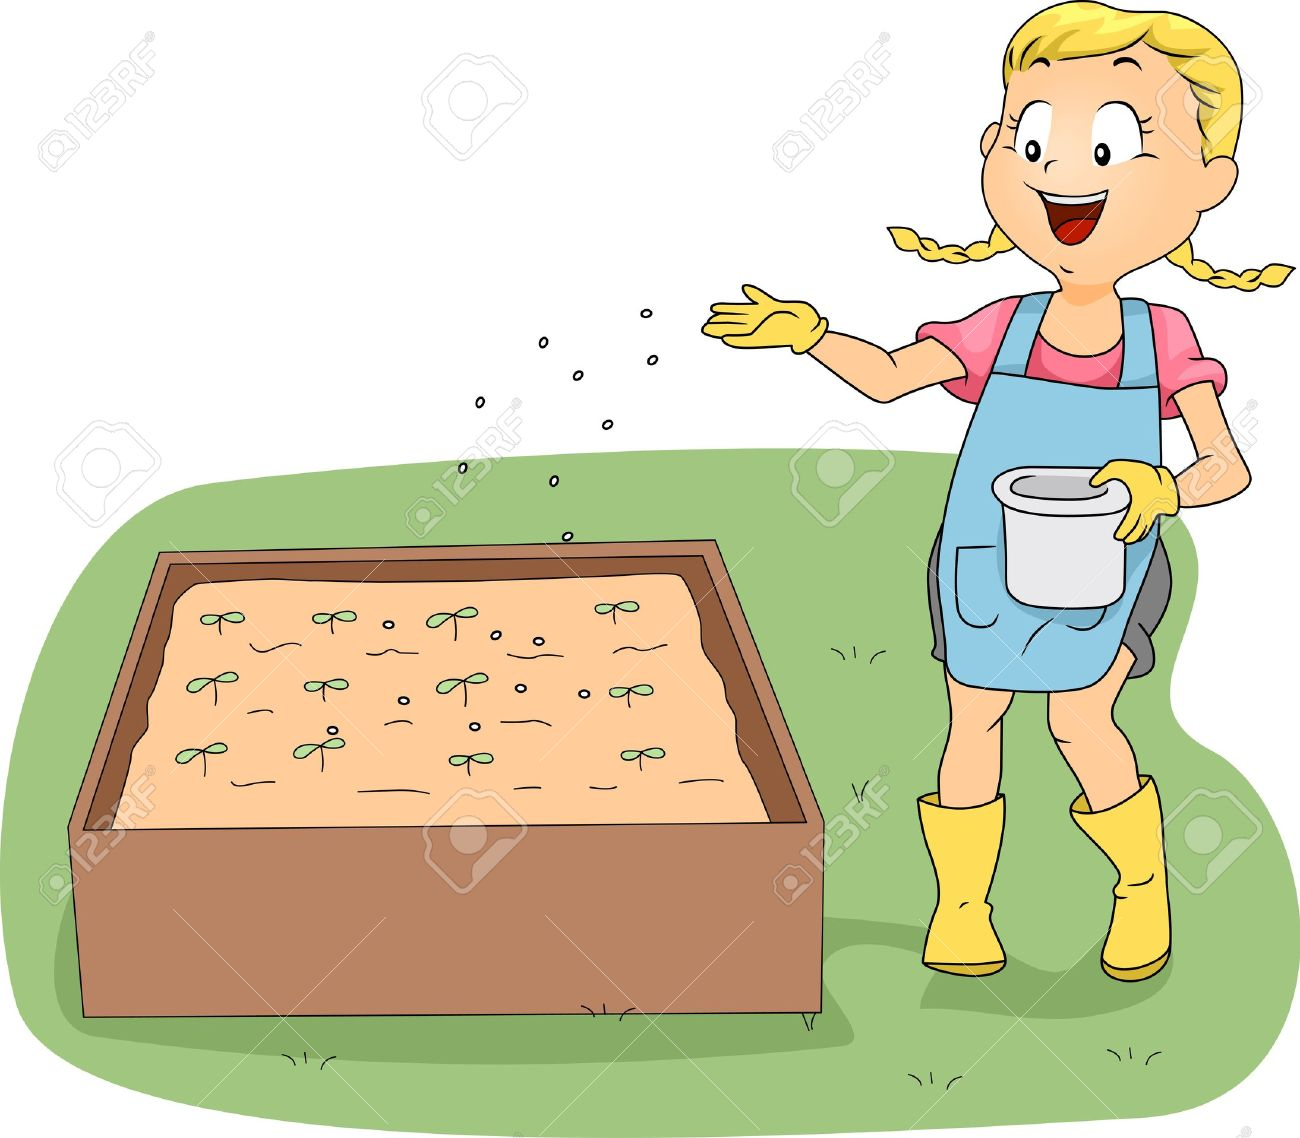 Illustration Of A Girl Fertilizing Plants Stock Photo, Picture And.